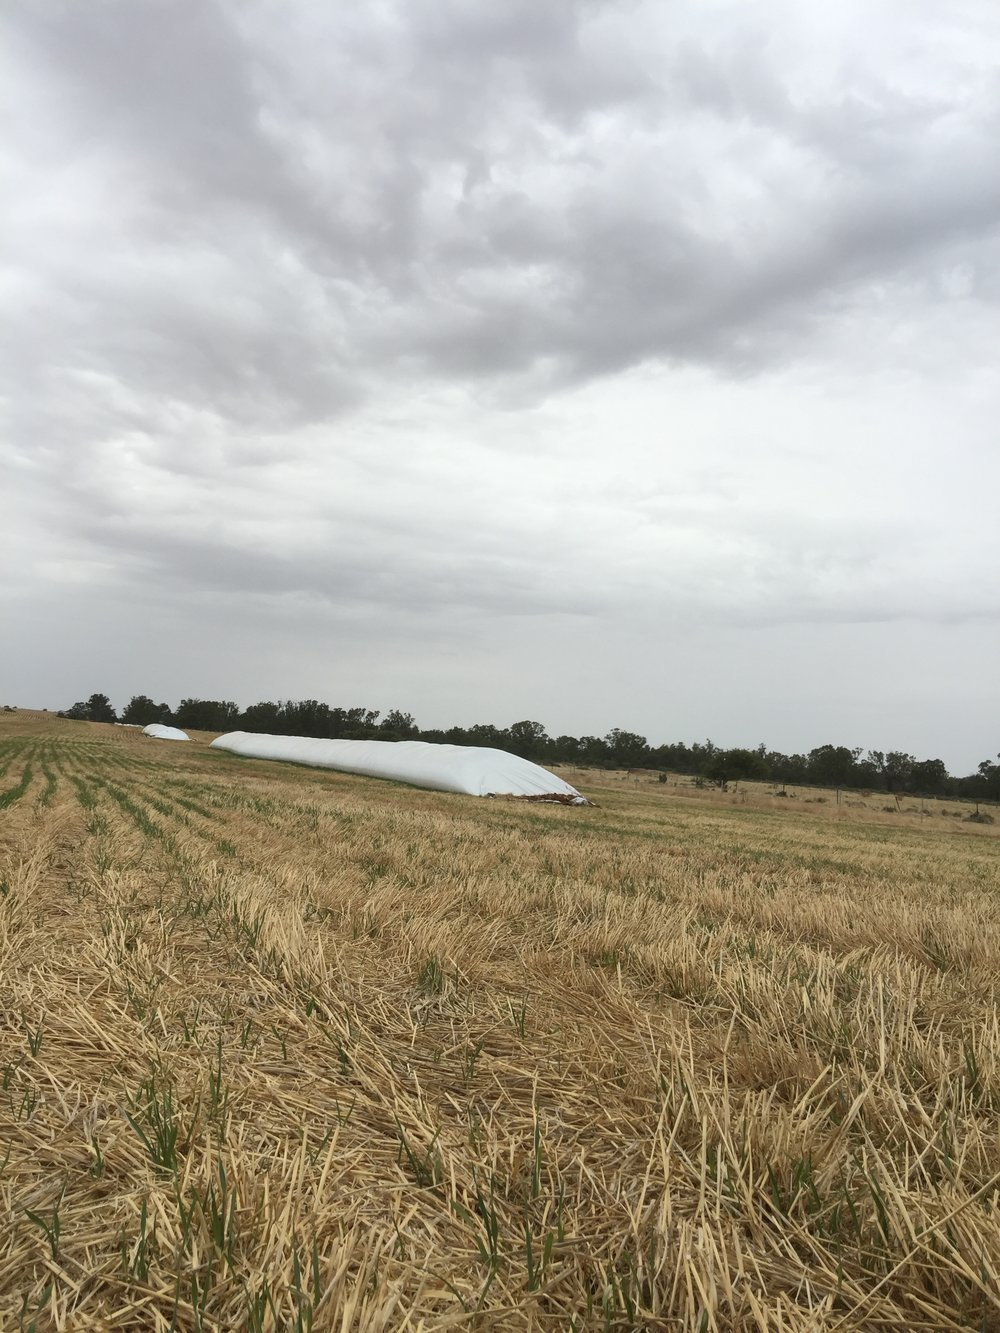 "Part of Rayali's work experience and internship involved visiting lots of farms, including grain farms: ""grain bags filled with grain right after harvest has finished. Grain bags are suited for short-term, high volume grains to assist with harvest logistics."""